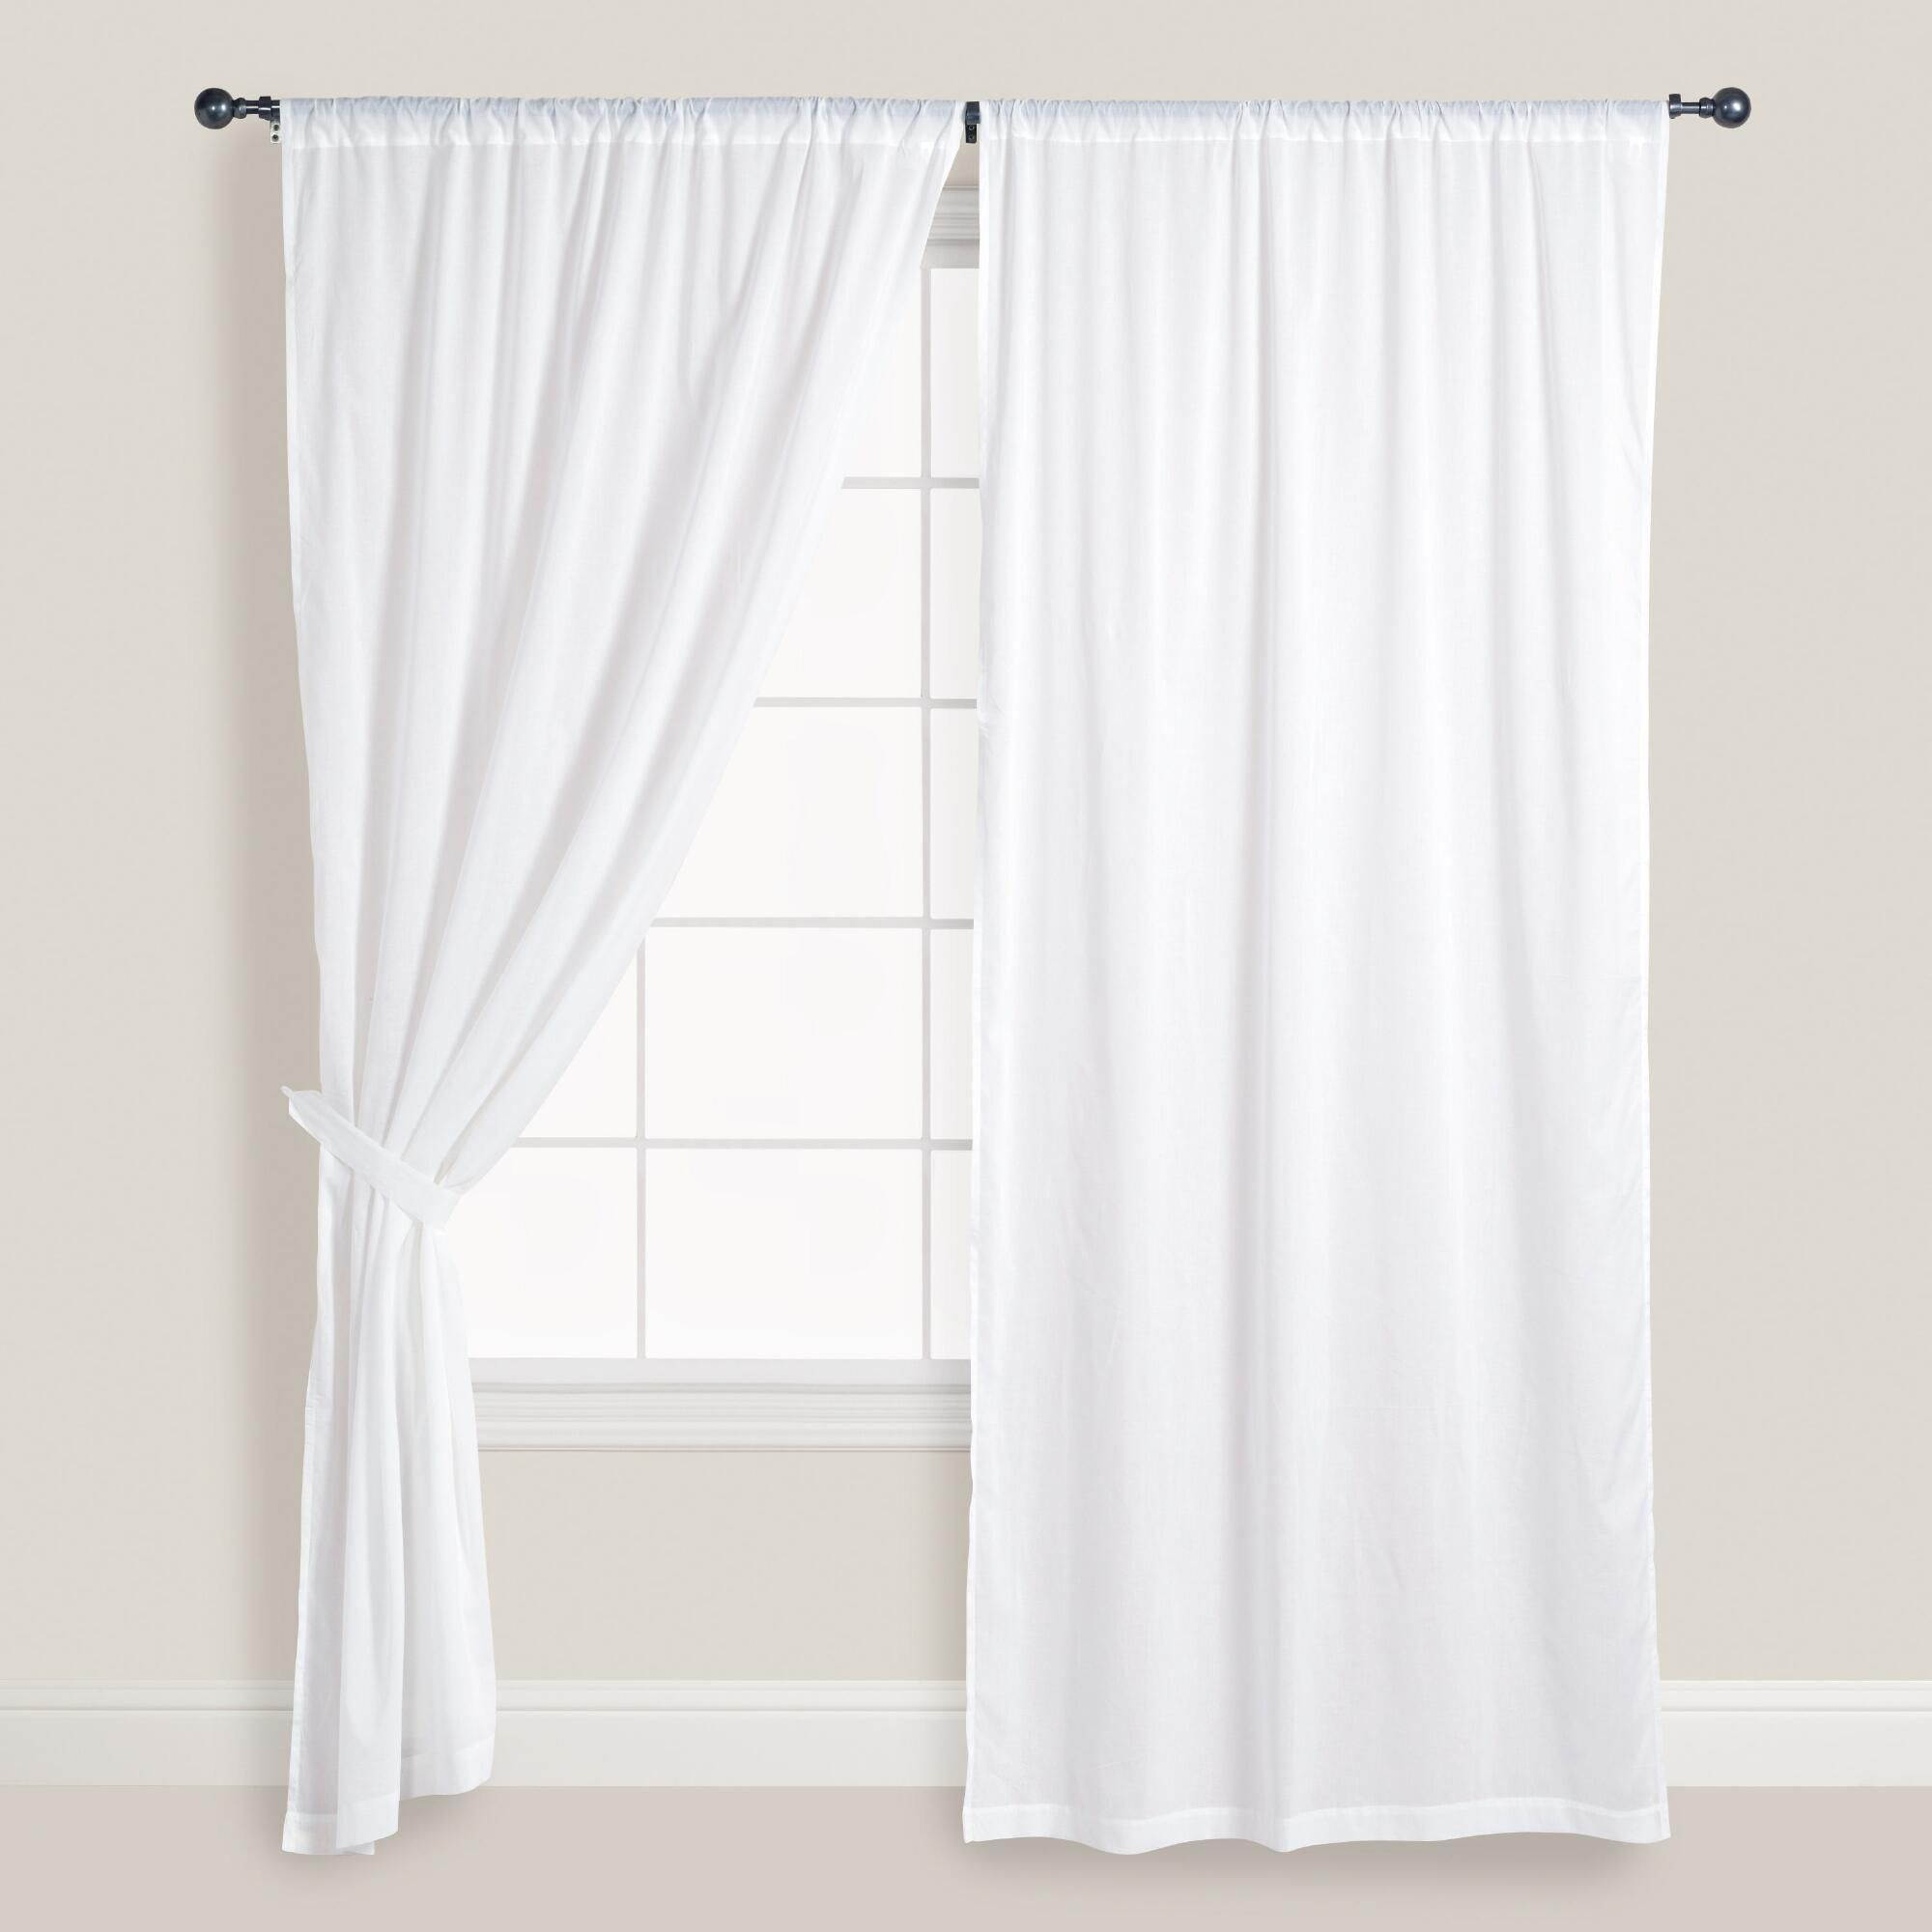 Dreamy, light and airy, our White Cotton Voile Curtains are ... for Net Curtains Texture  111ane